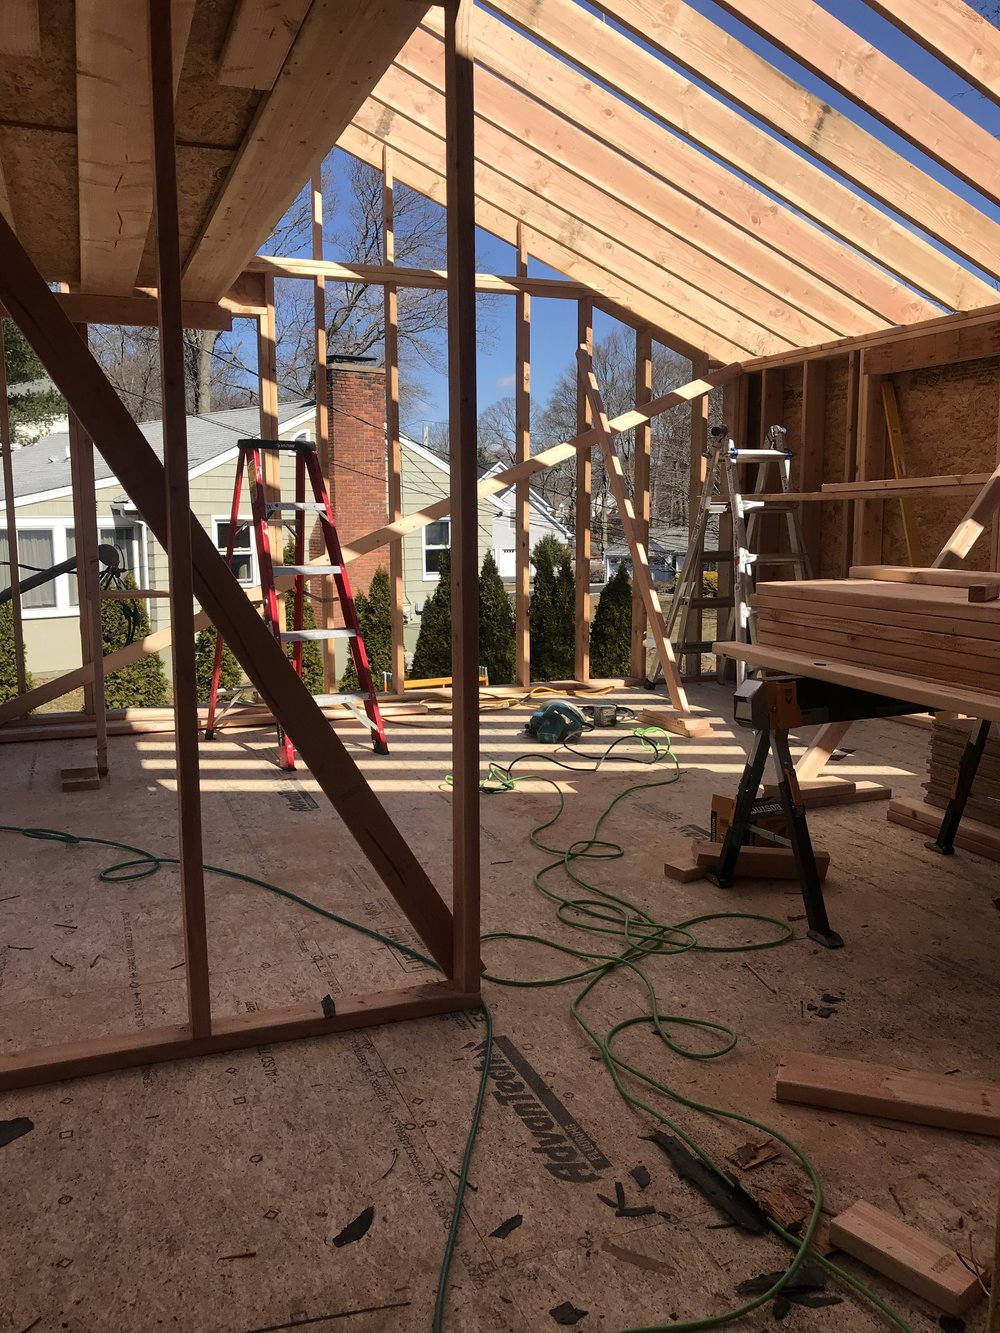 Construction of 500 sq foot addition for Fairfield U Flip by The Rath Project